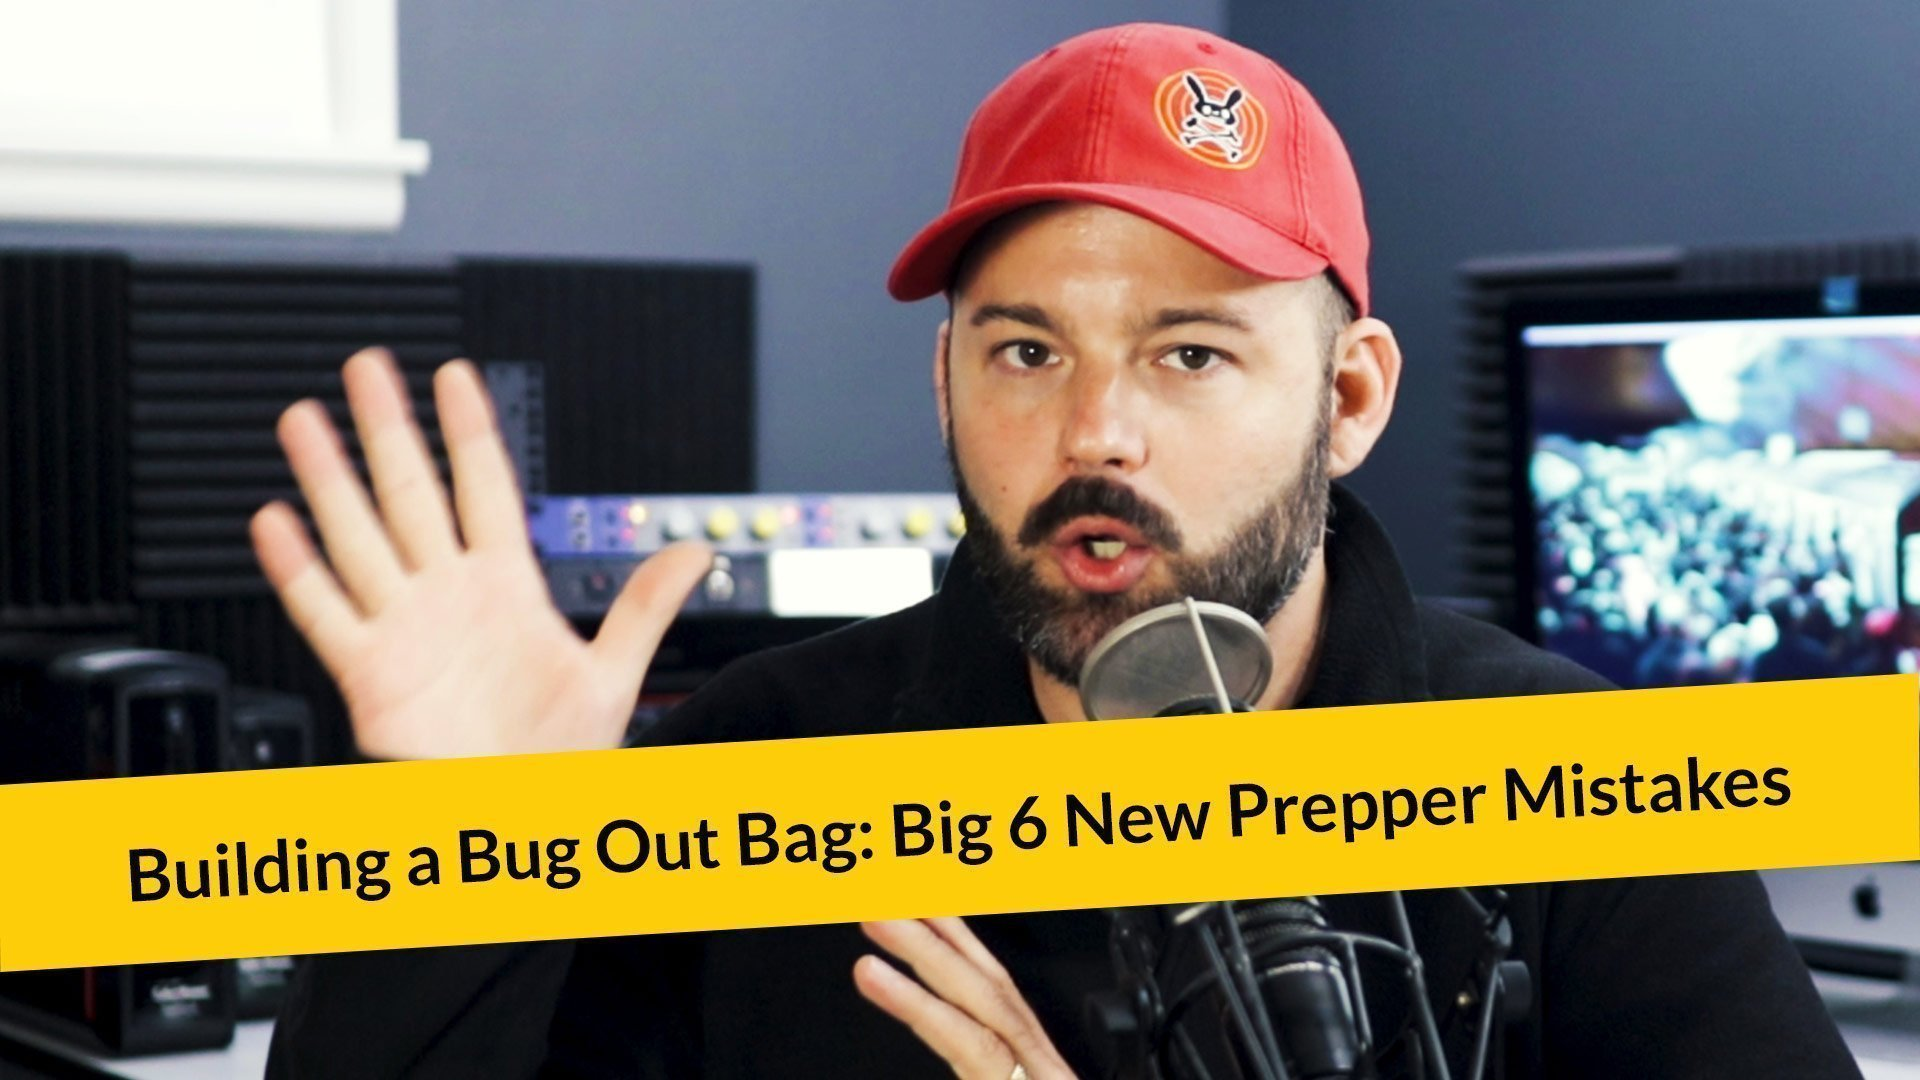 E285: Building A Bug Out Bag: Big 6 New Prepper Mistakes